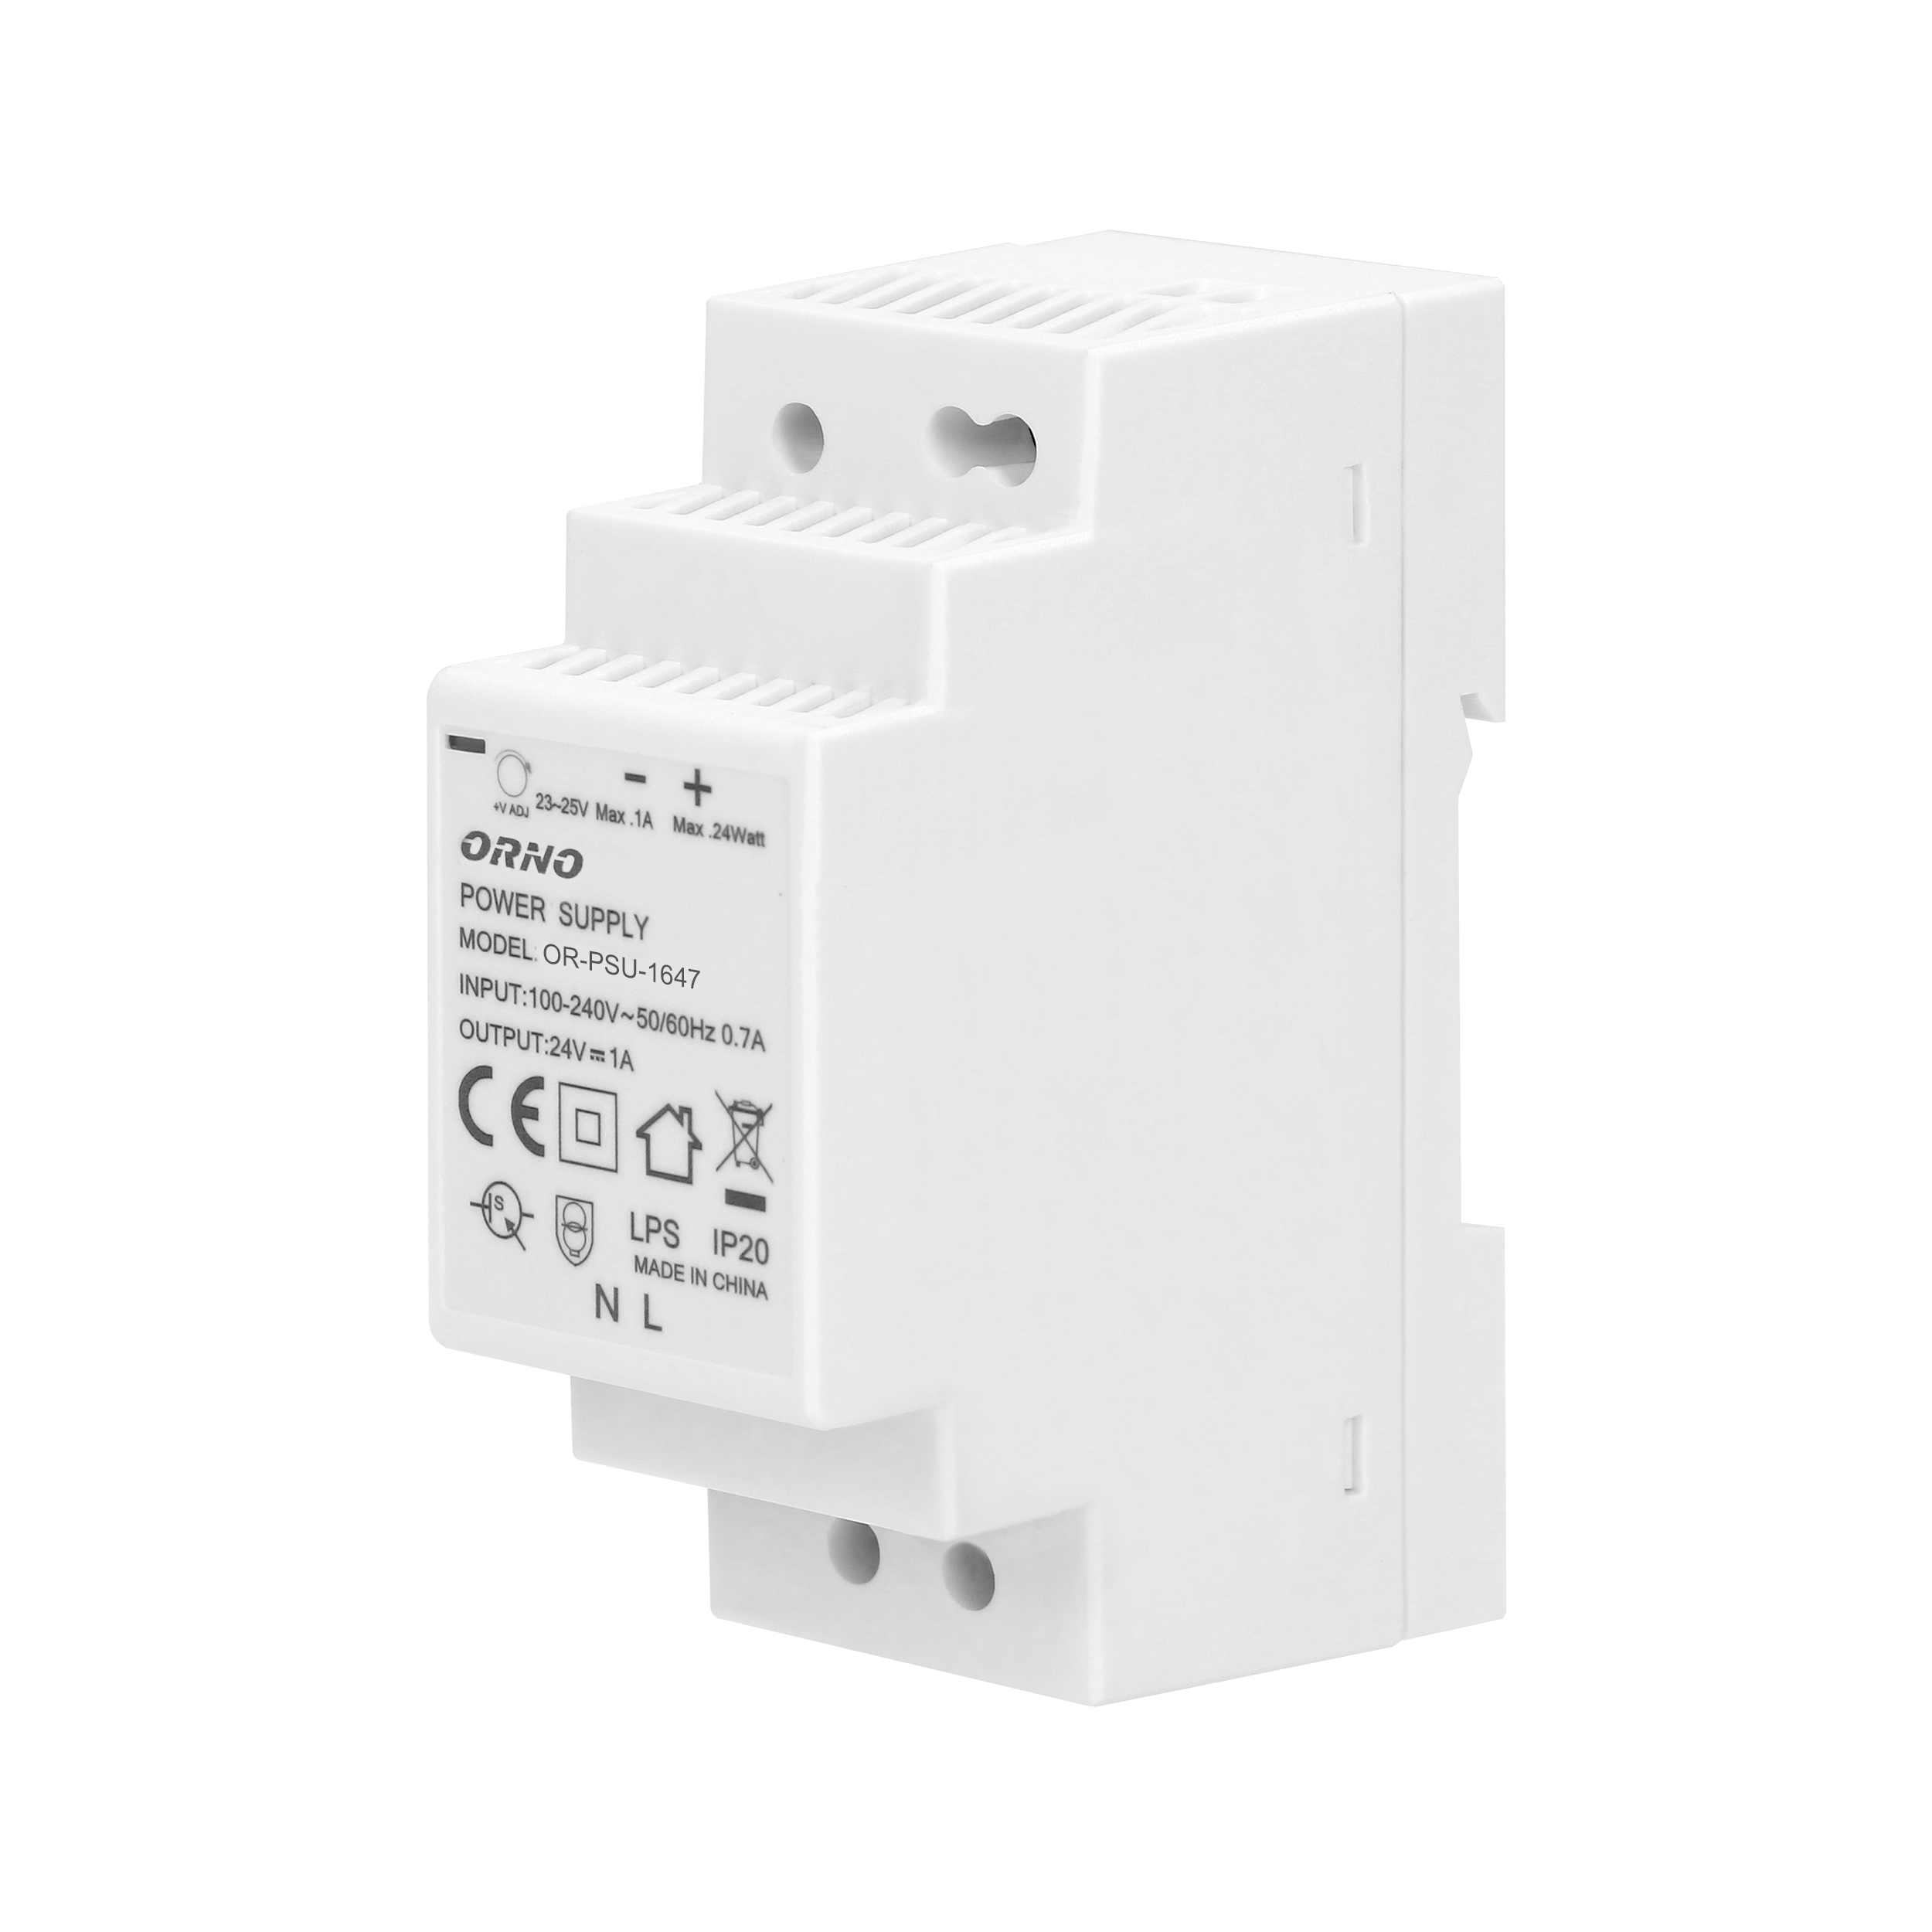 DIN rail power adaptor  24VDC, 1A, 24W, width: 2 units